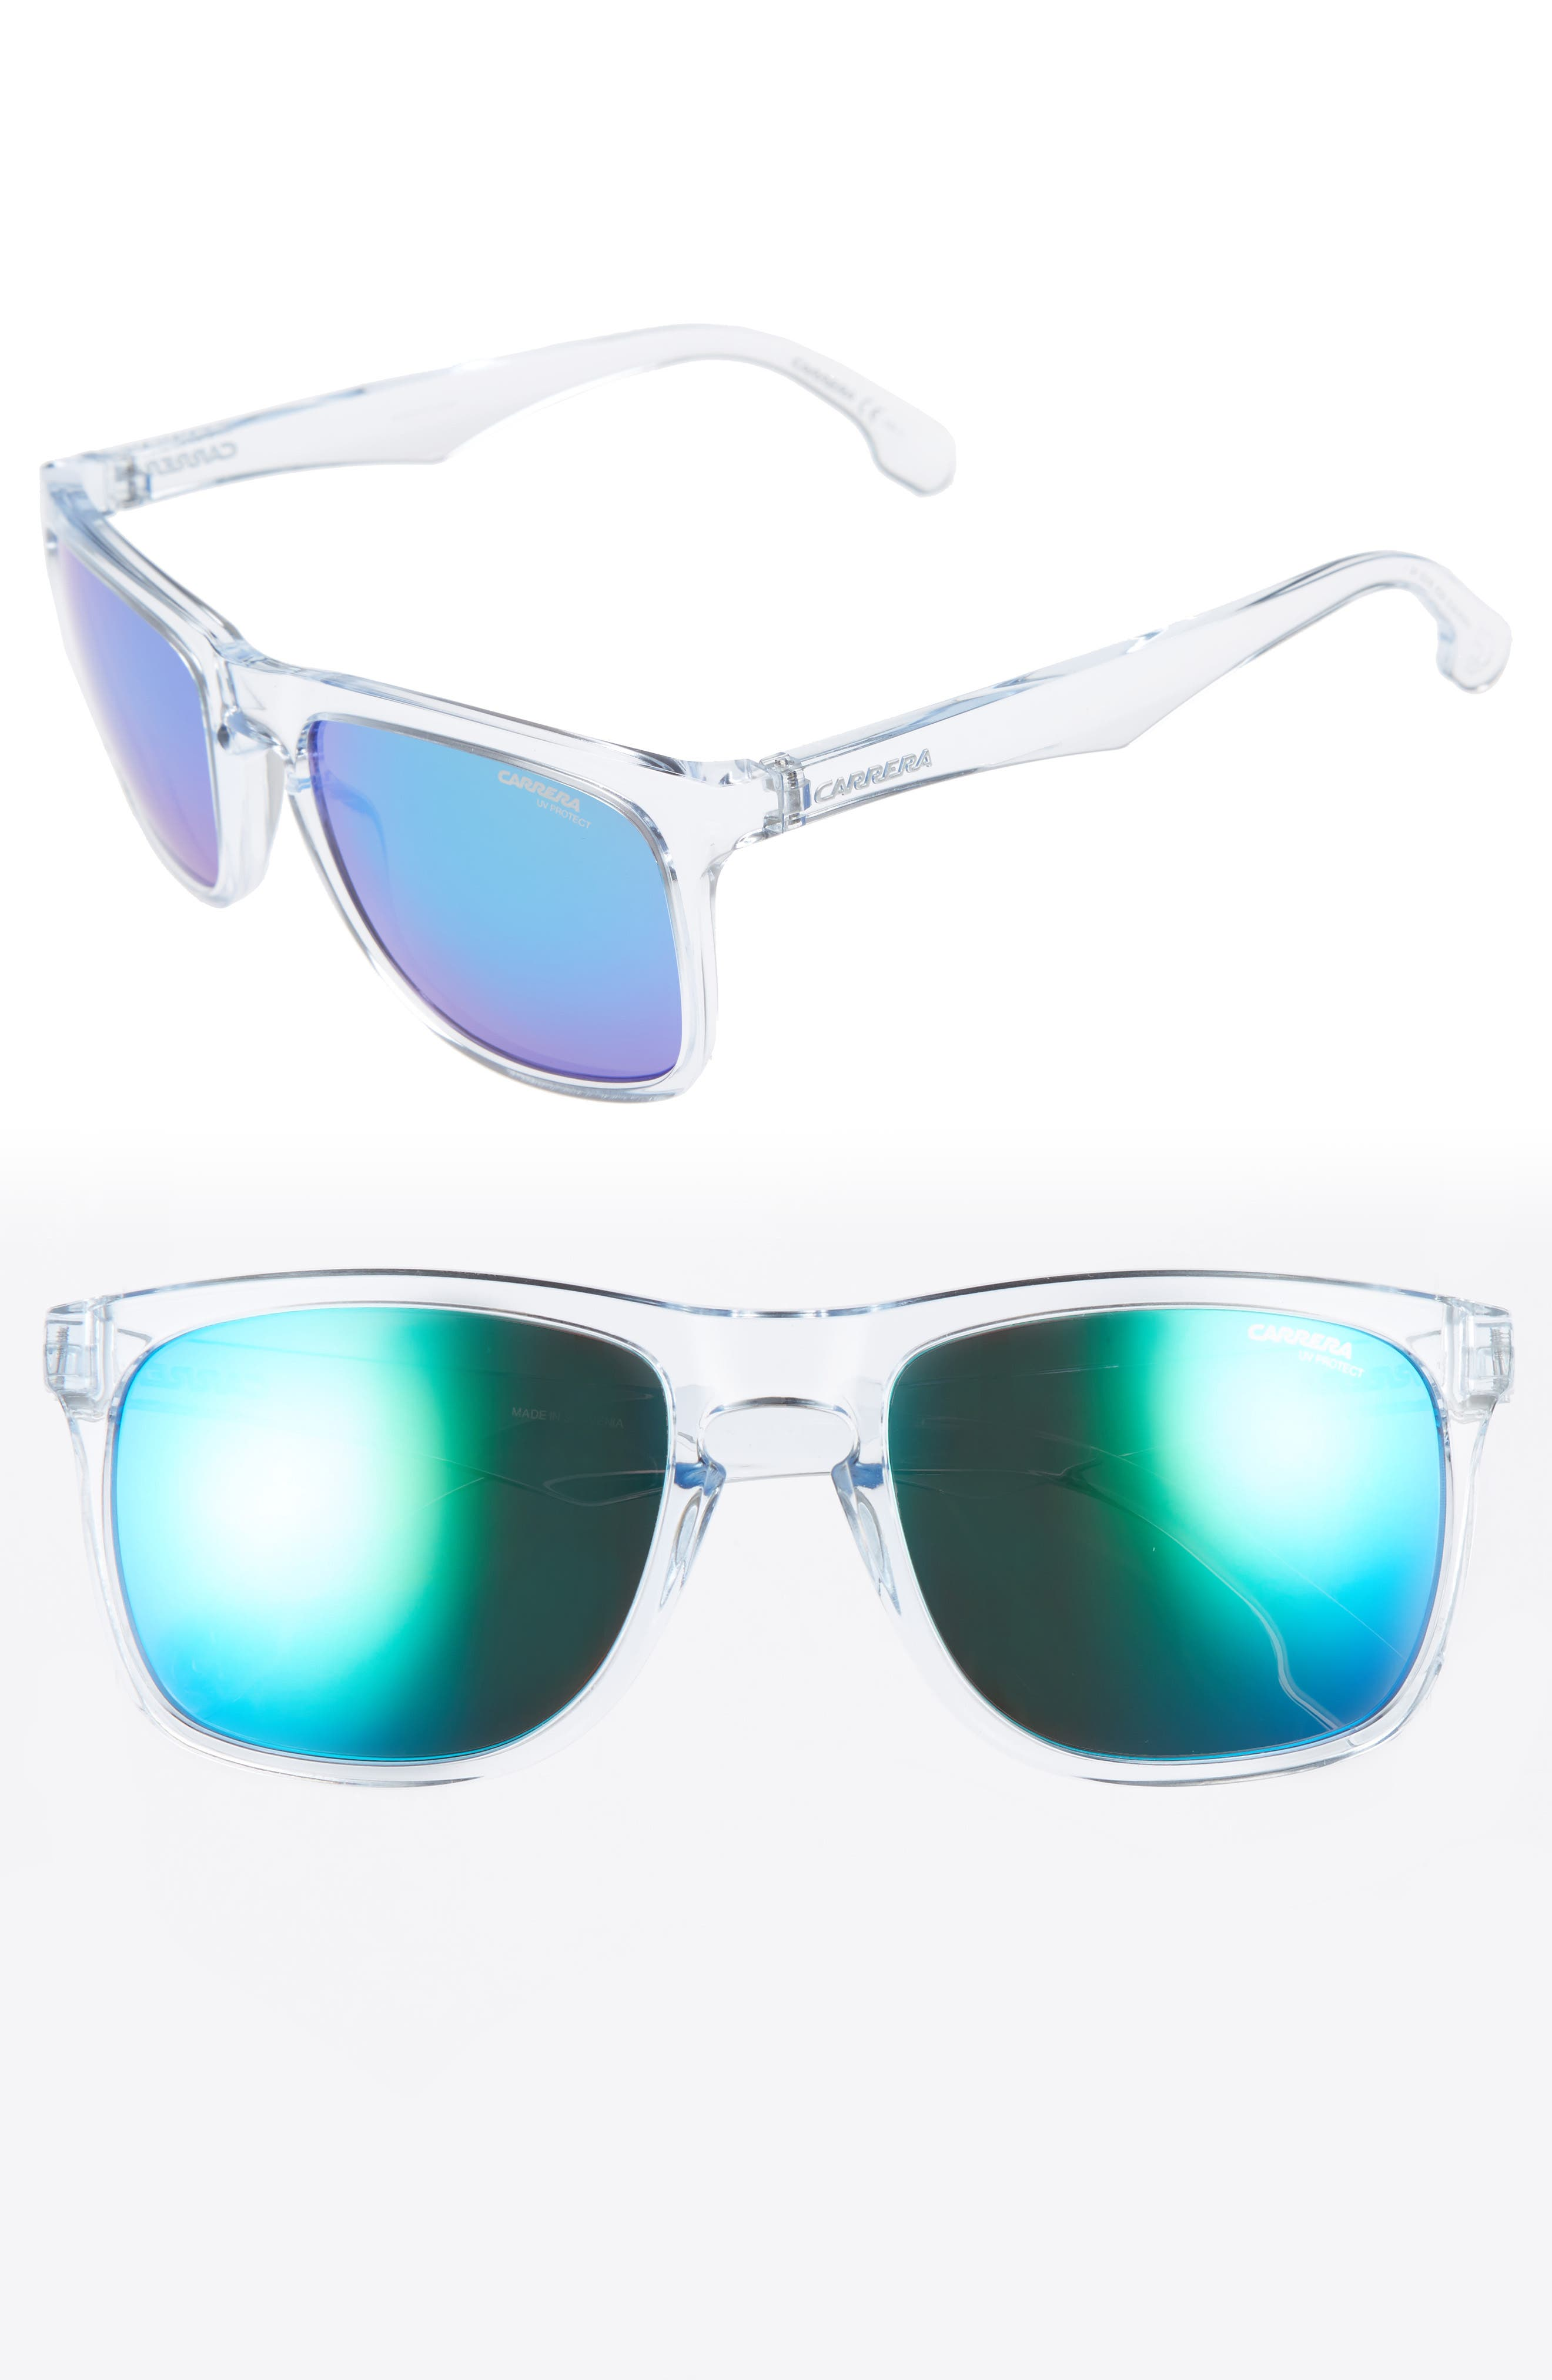 56mm Mirrored Lens Sunglasses,                             Main thumbnail 1, color,